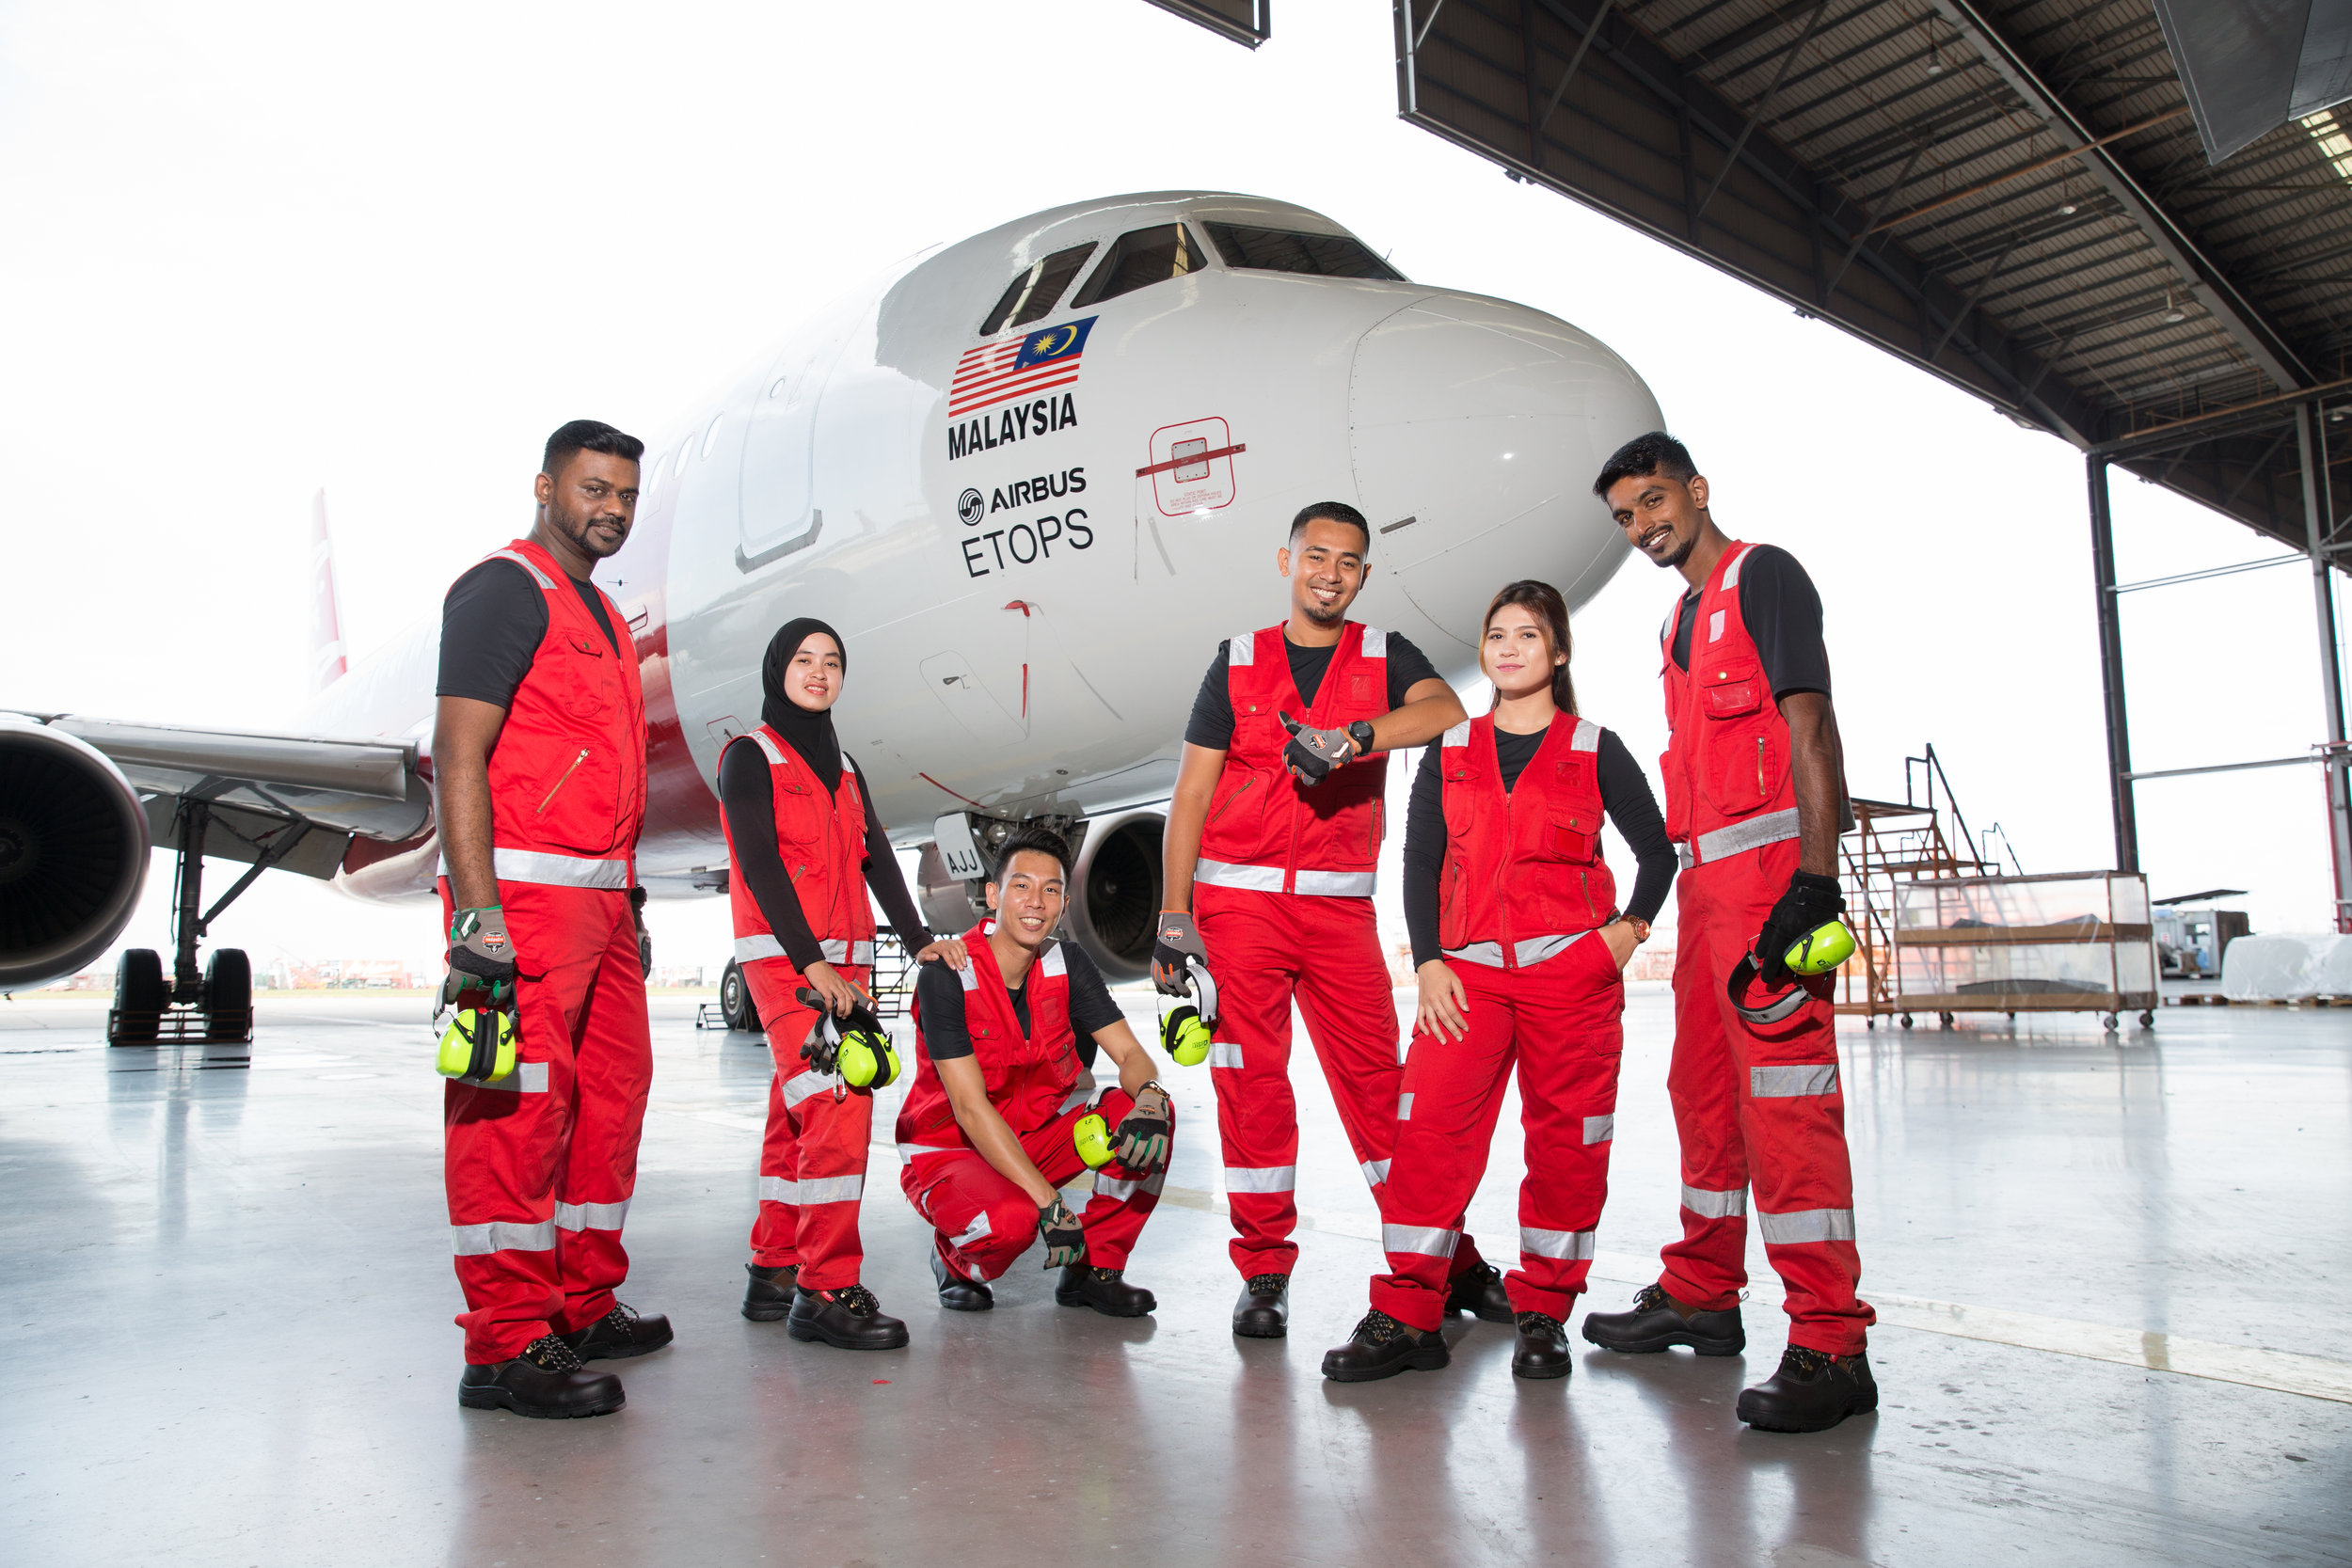 AirAsia Careers - Where would you like to go with us?